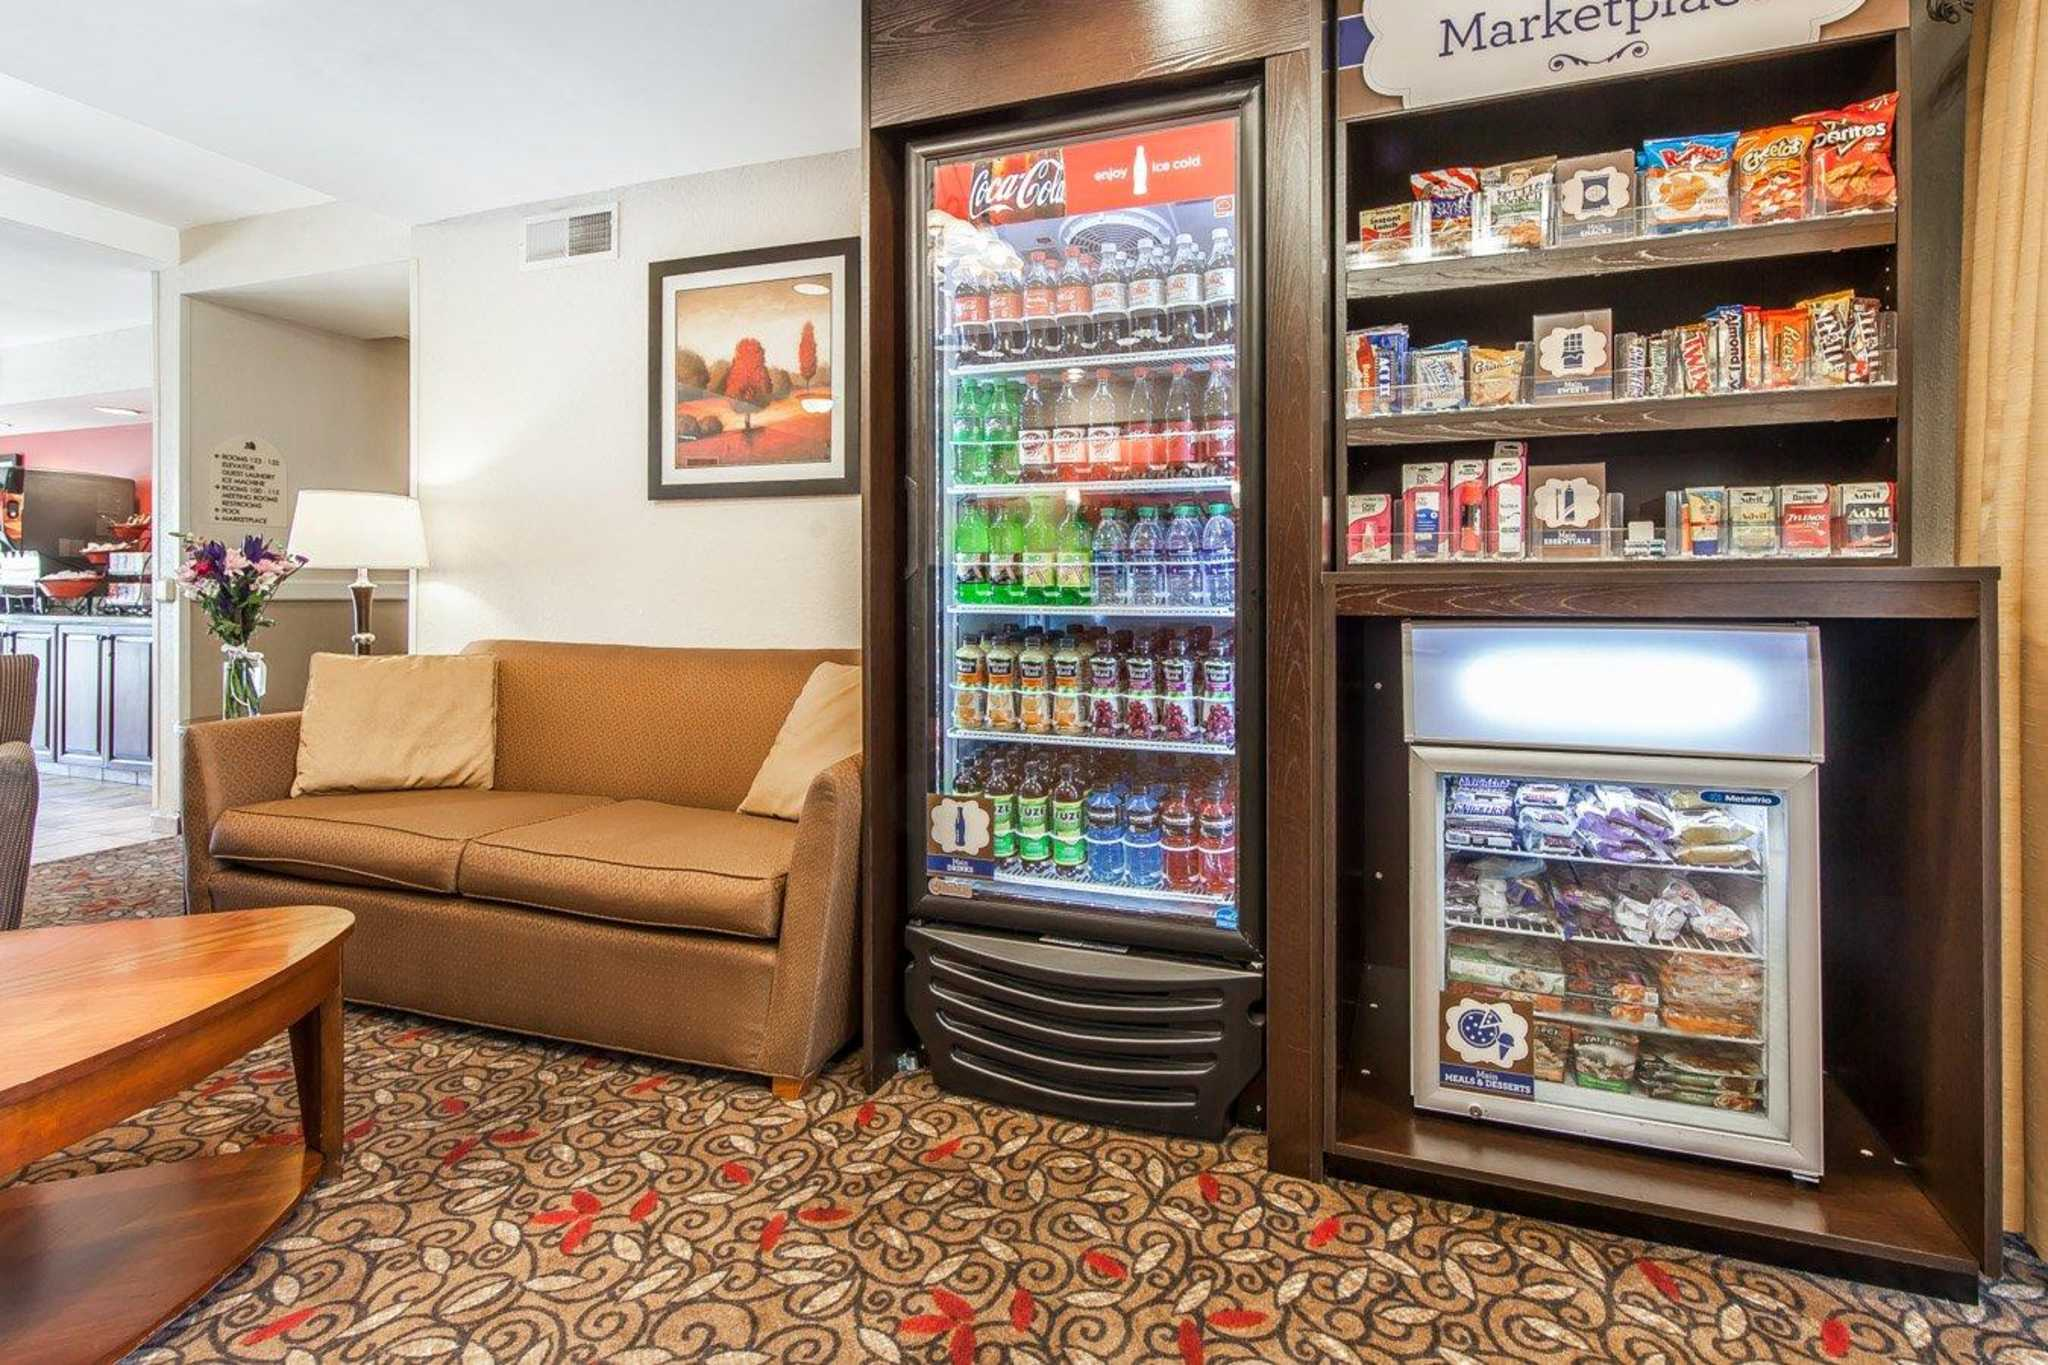 MainStay Suites Knoxville Airport image 35